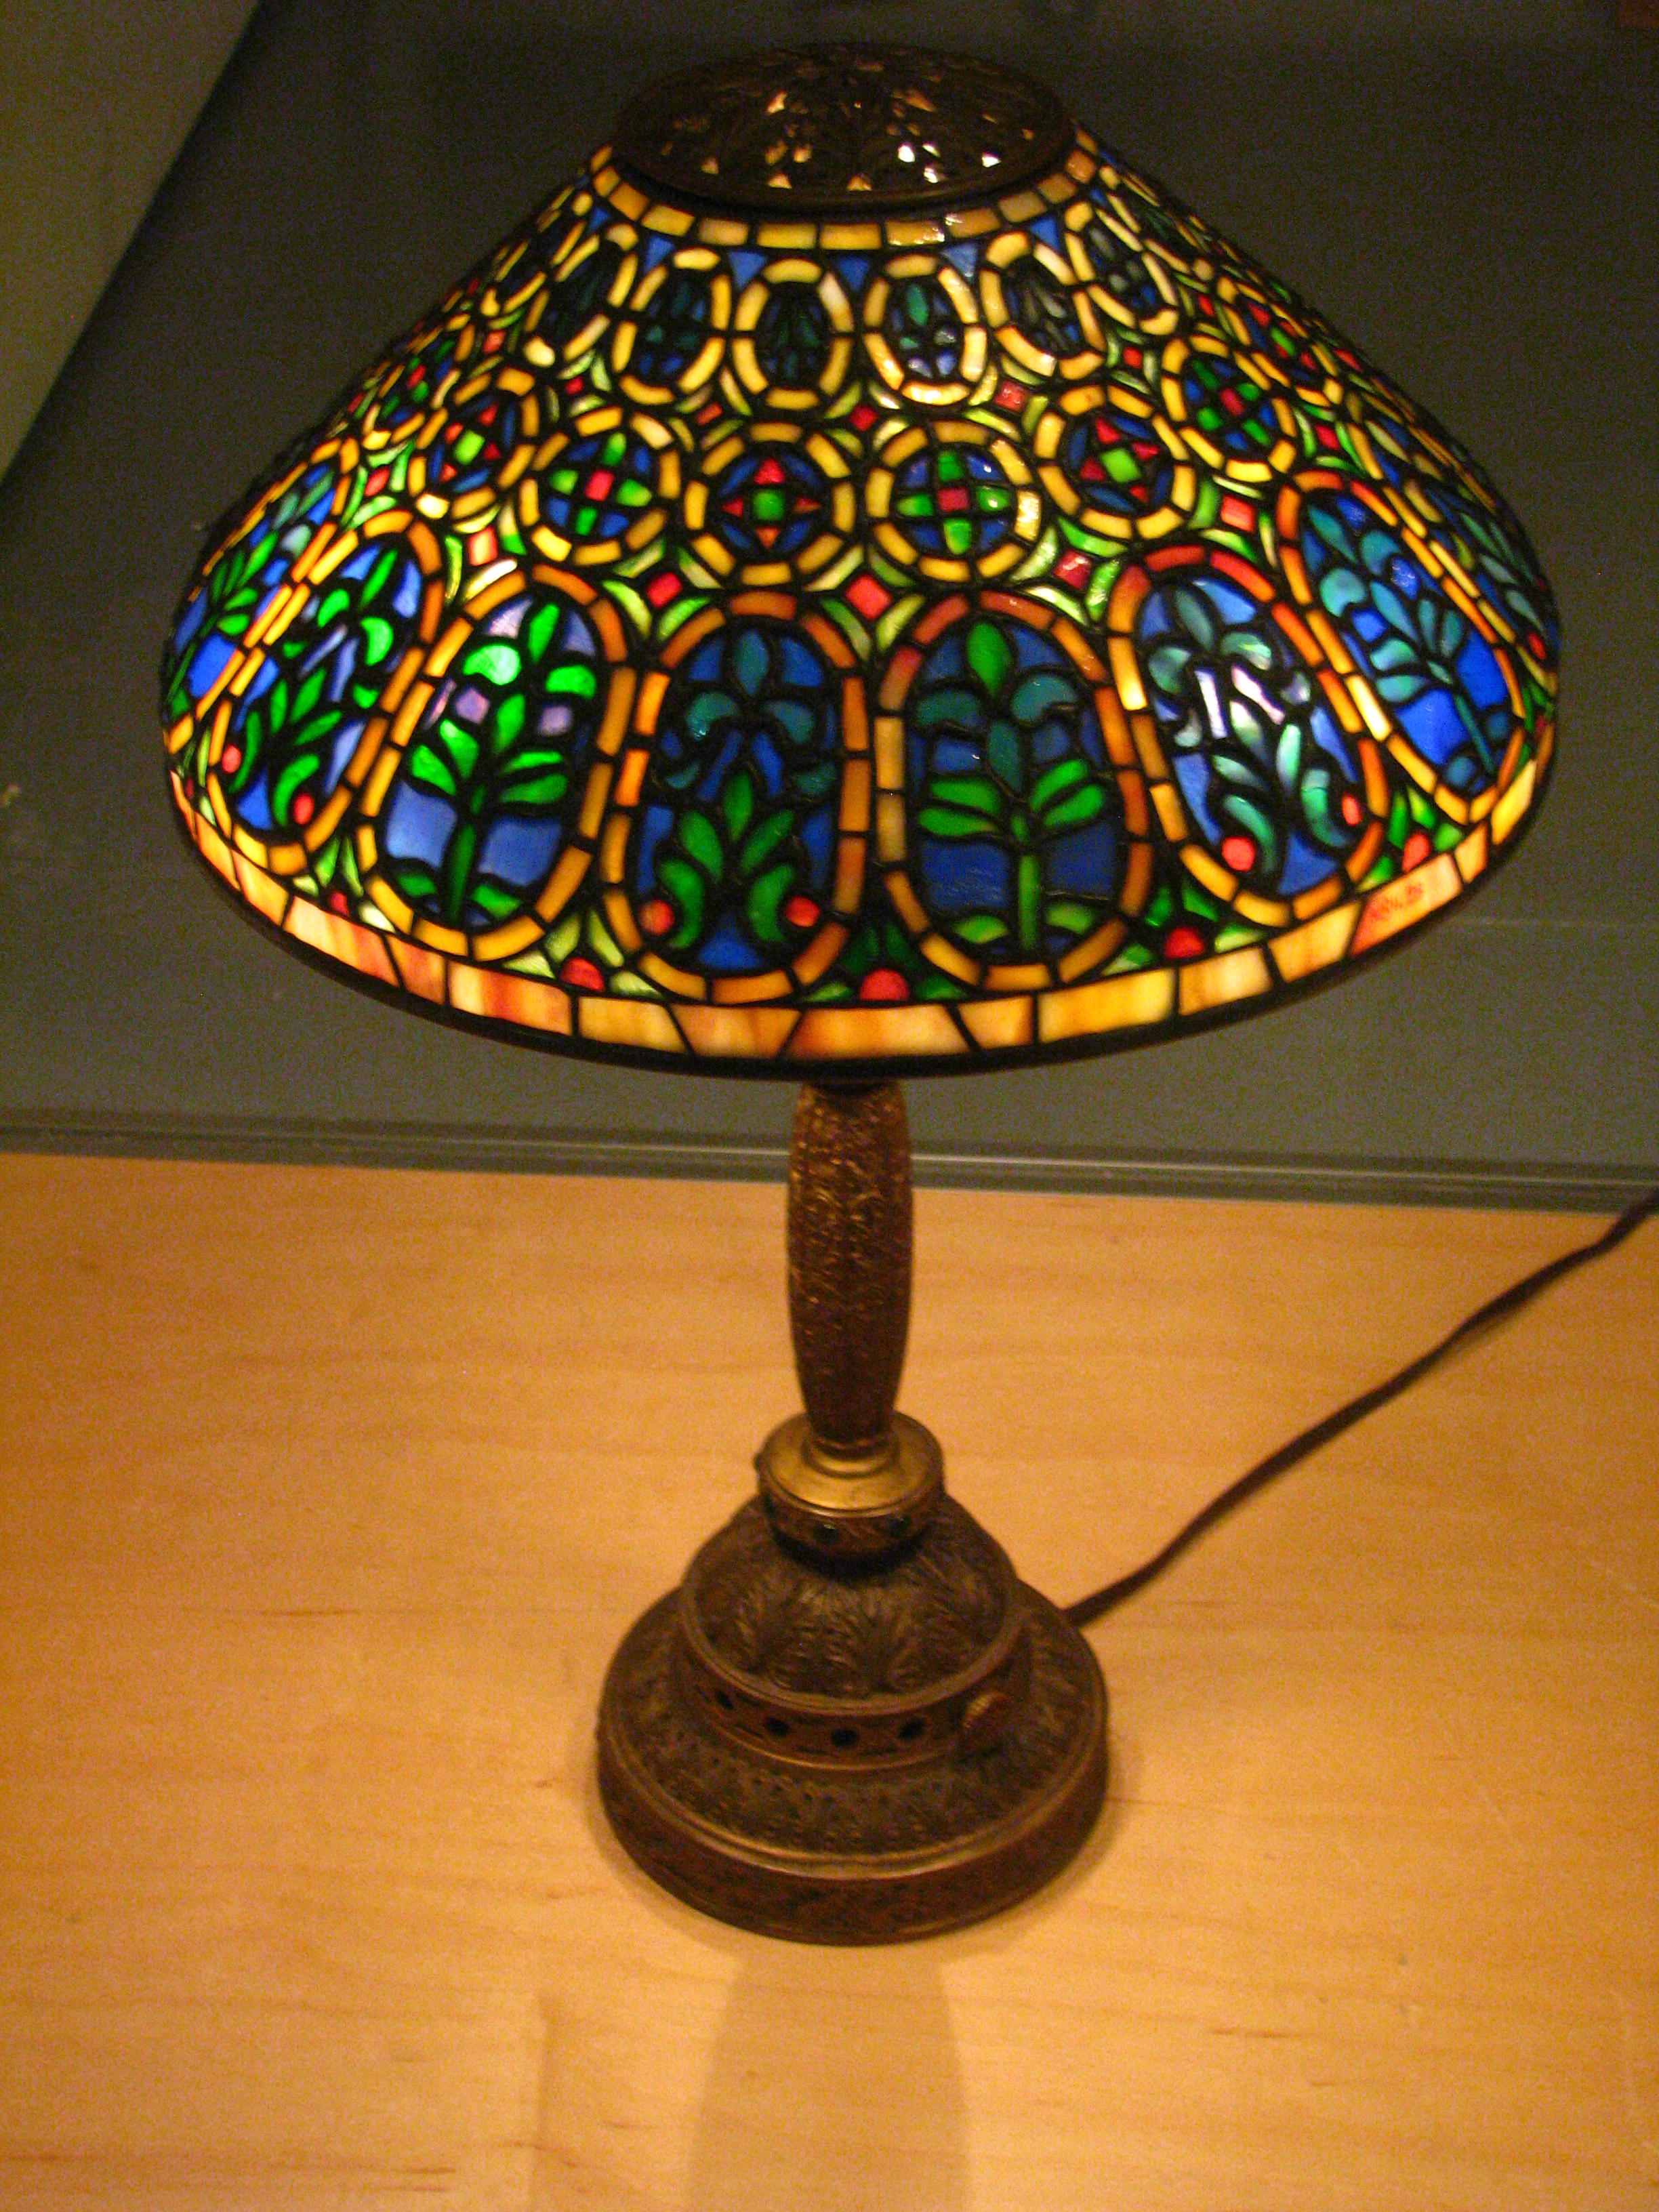 File Wla Nyhistorical 1910 Desk Lamp Jpg Wikimedia Commons